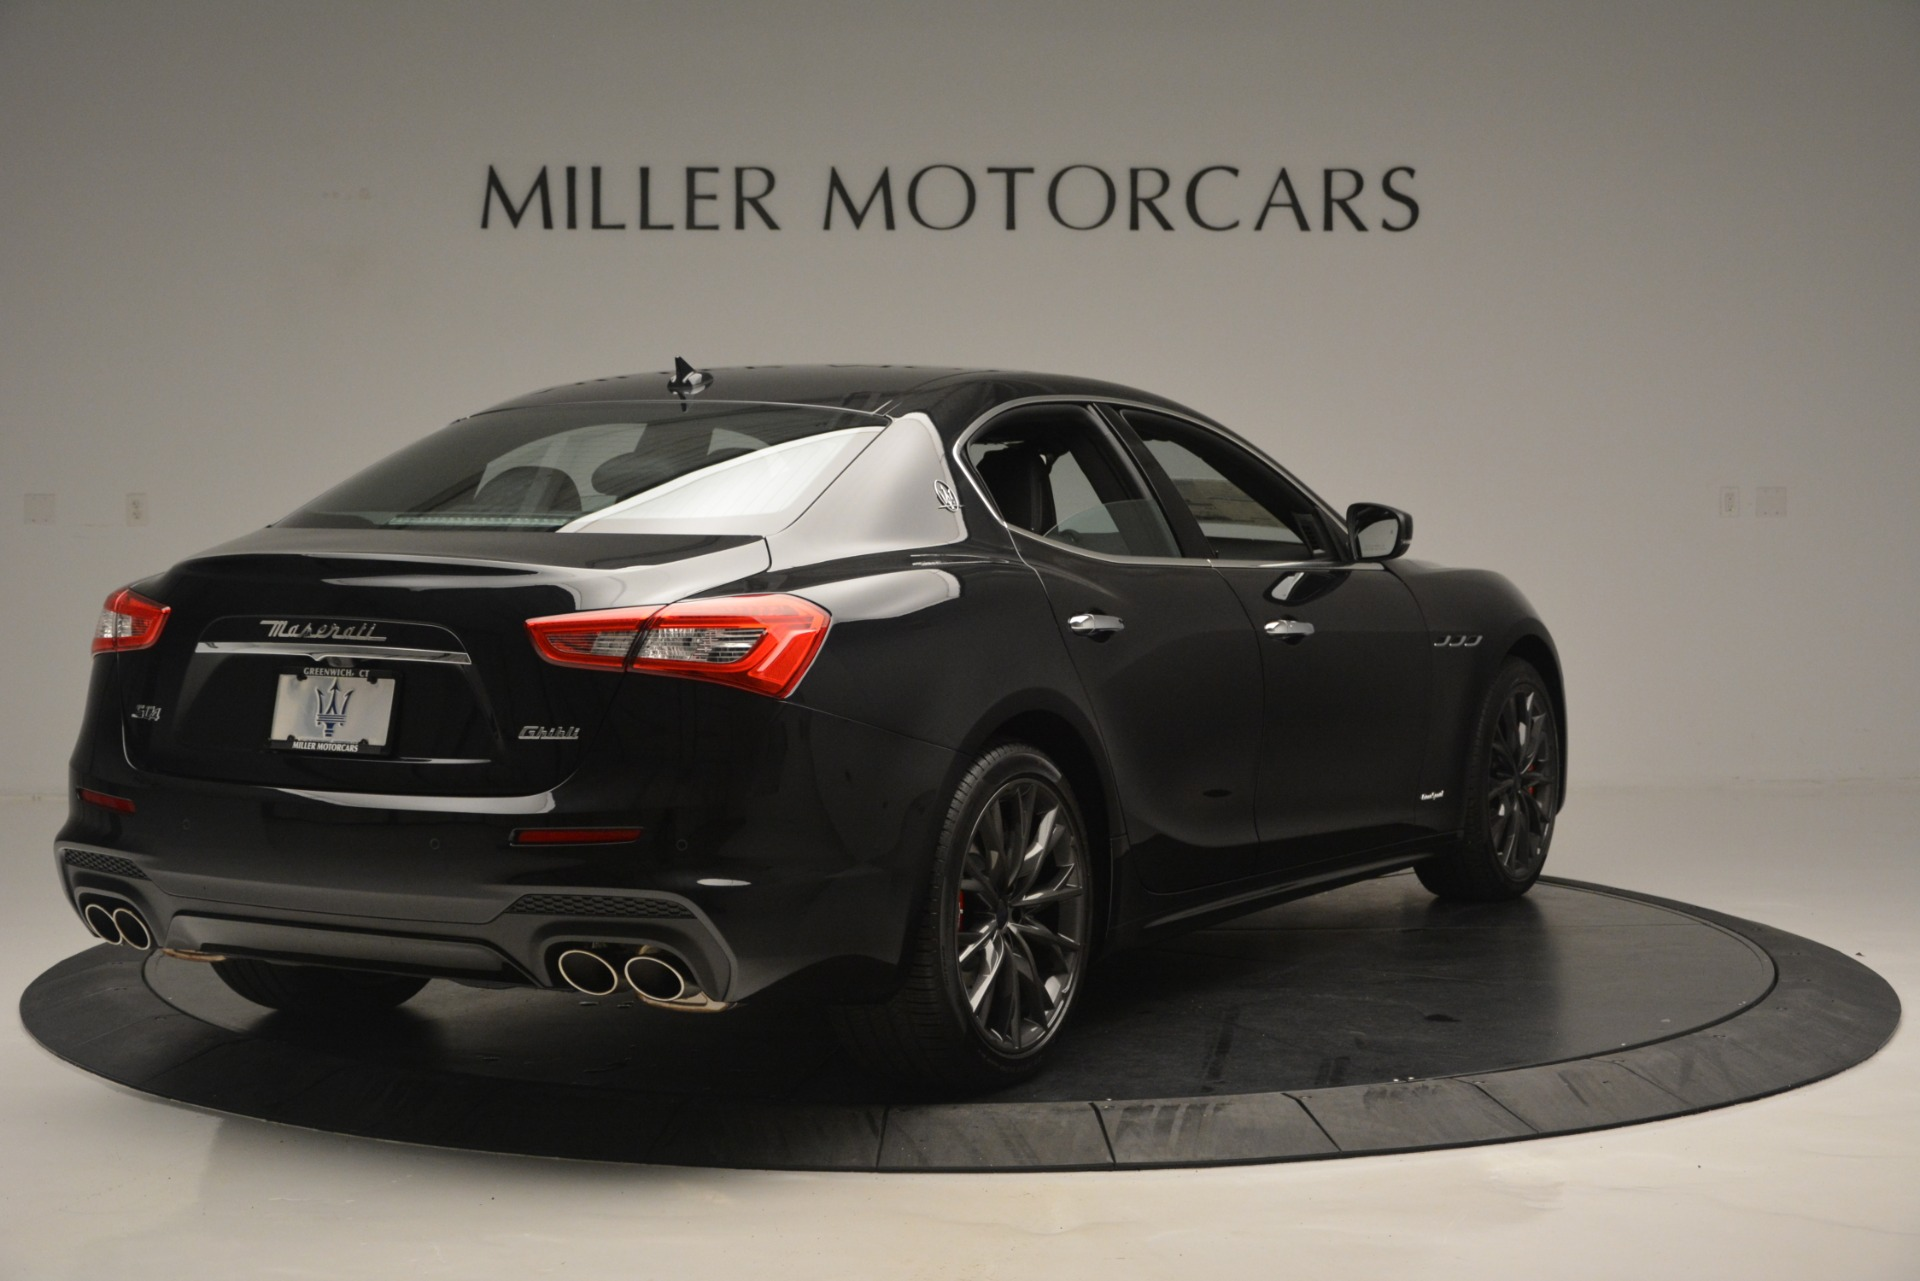 New 2019 Maserati Ghibli S Q4 GranSport For Sale In Westport, CT 2635_p7